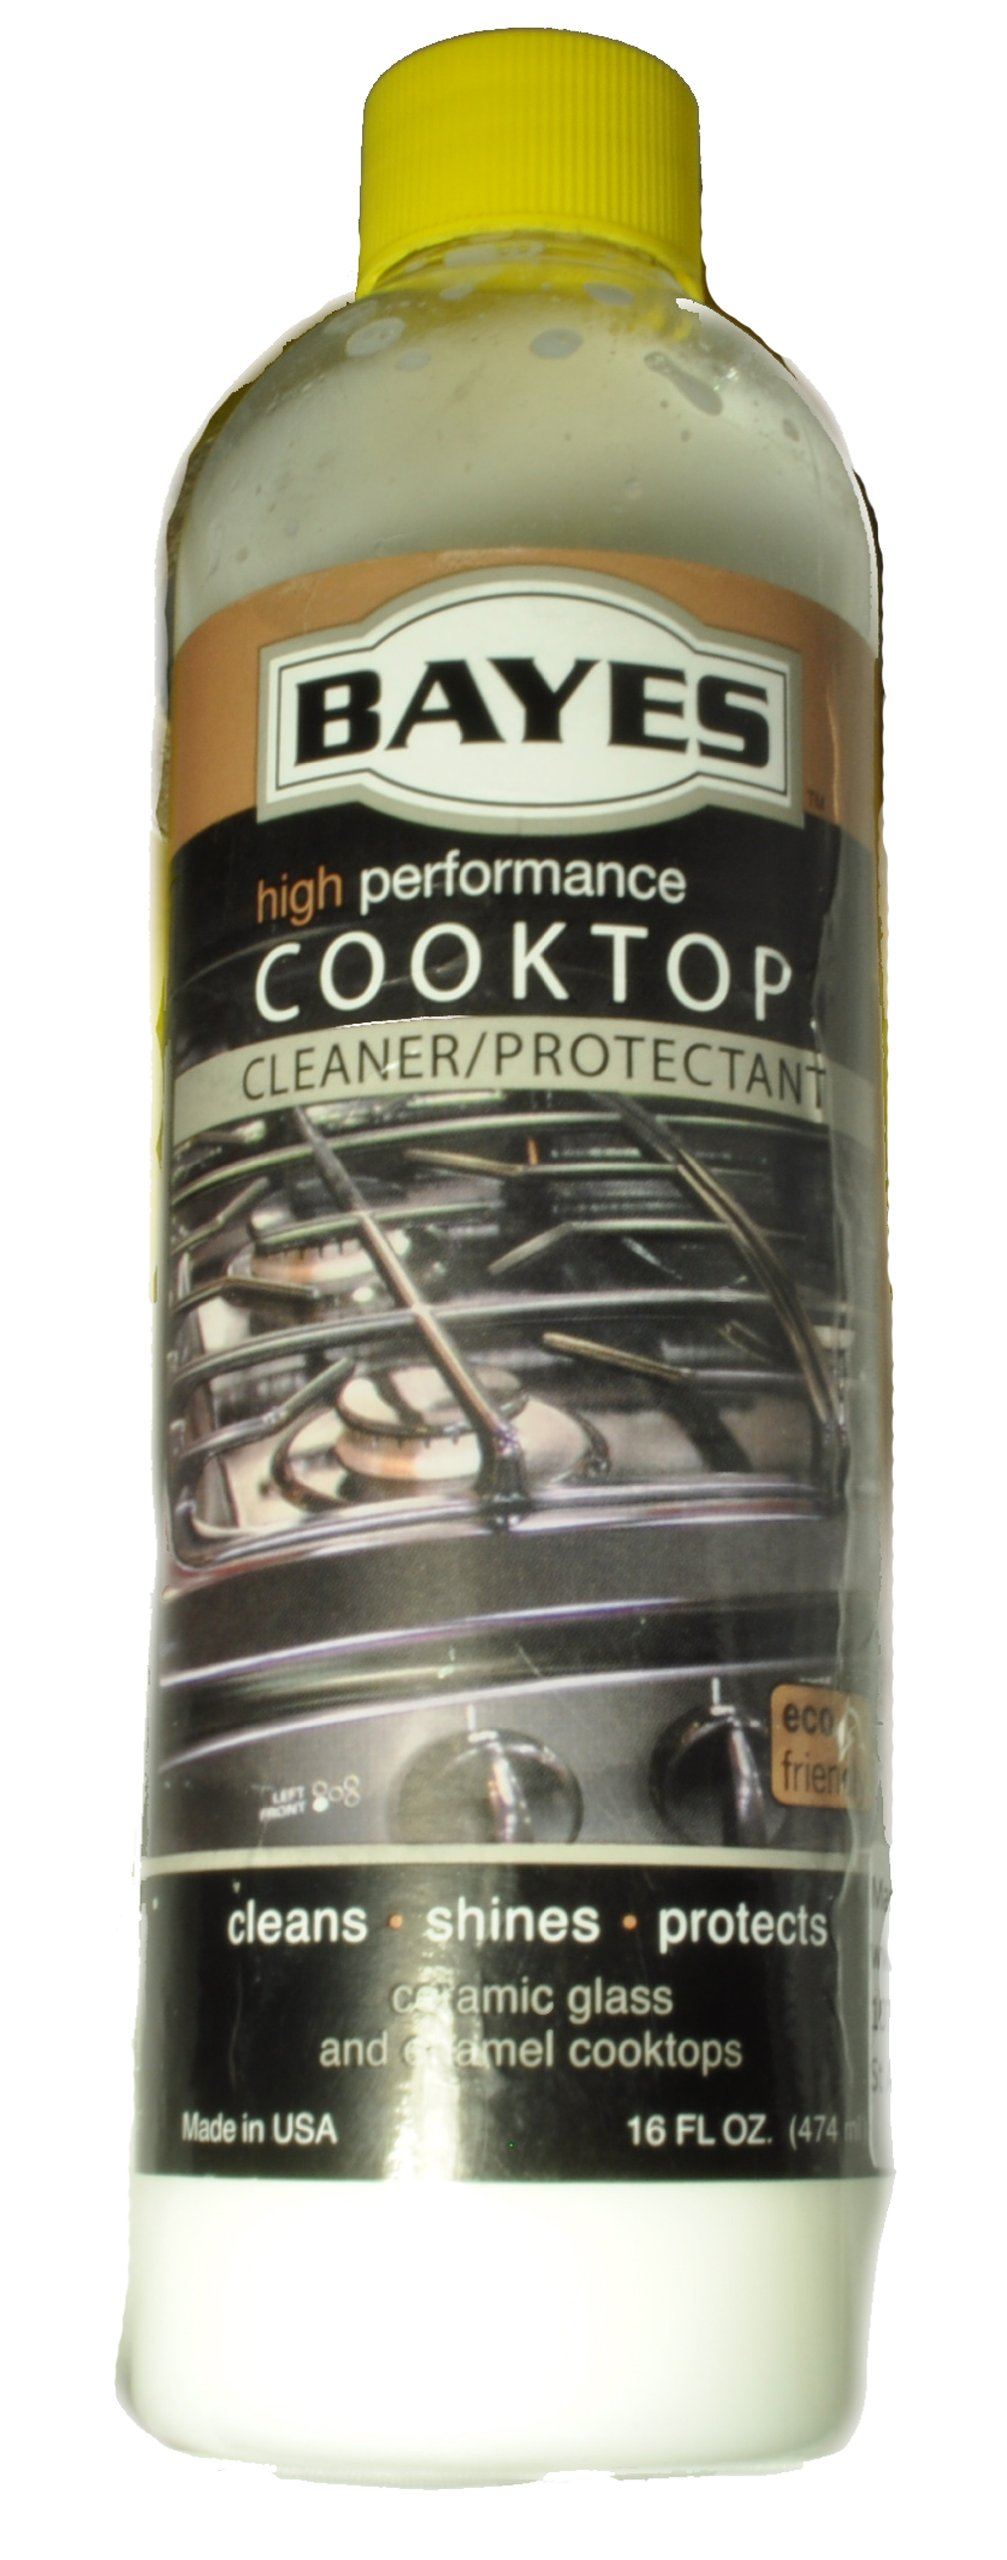 Bayes Cooktop Cleaner Protectant